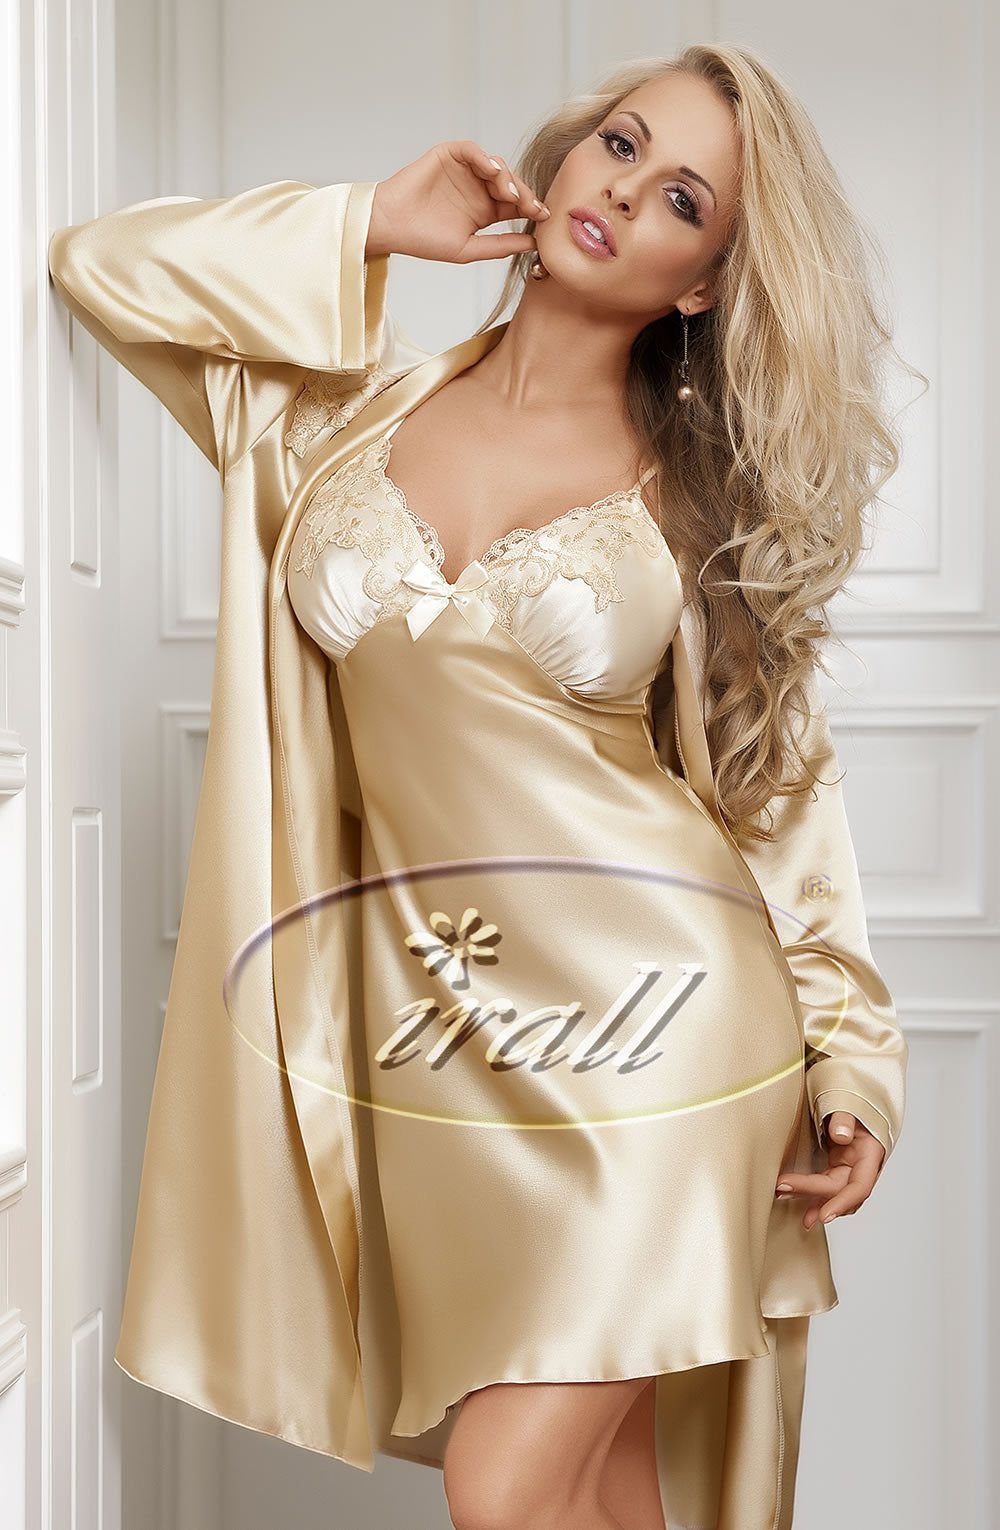 Irall Parisa Dressing Gown  Dressing Gowns, Irall, NEWLY-IMPORTED, Nightwear, Plus Sizes, Robes - So Luxe Lingerie